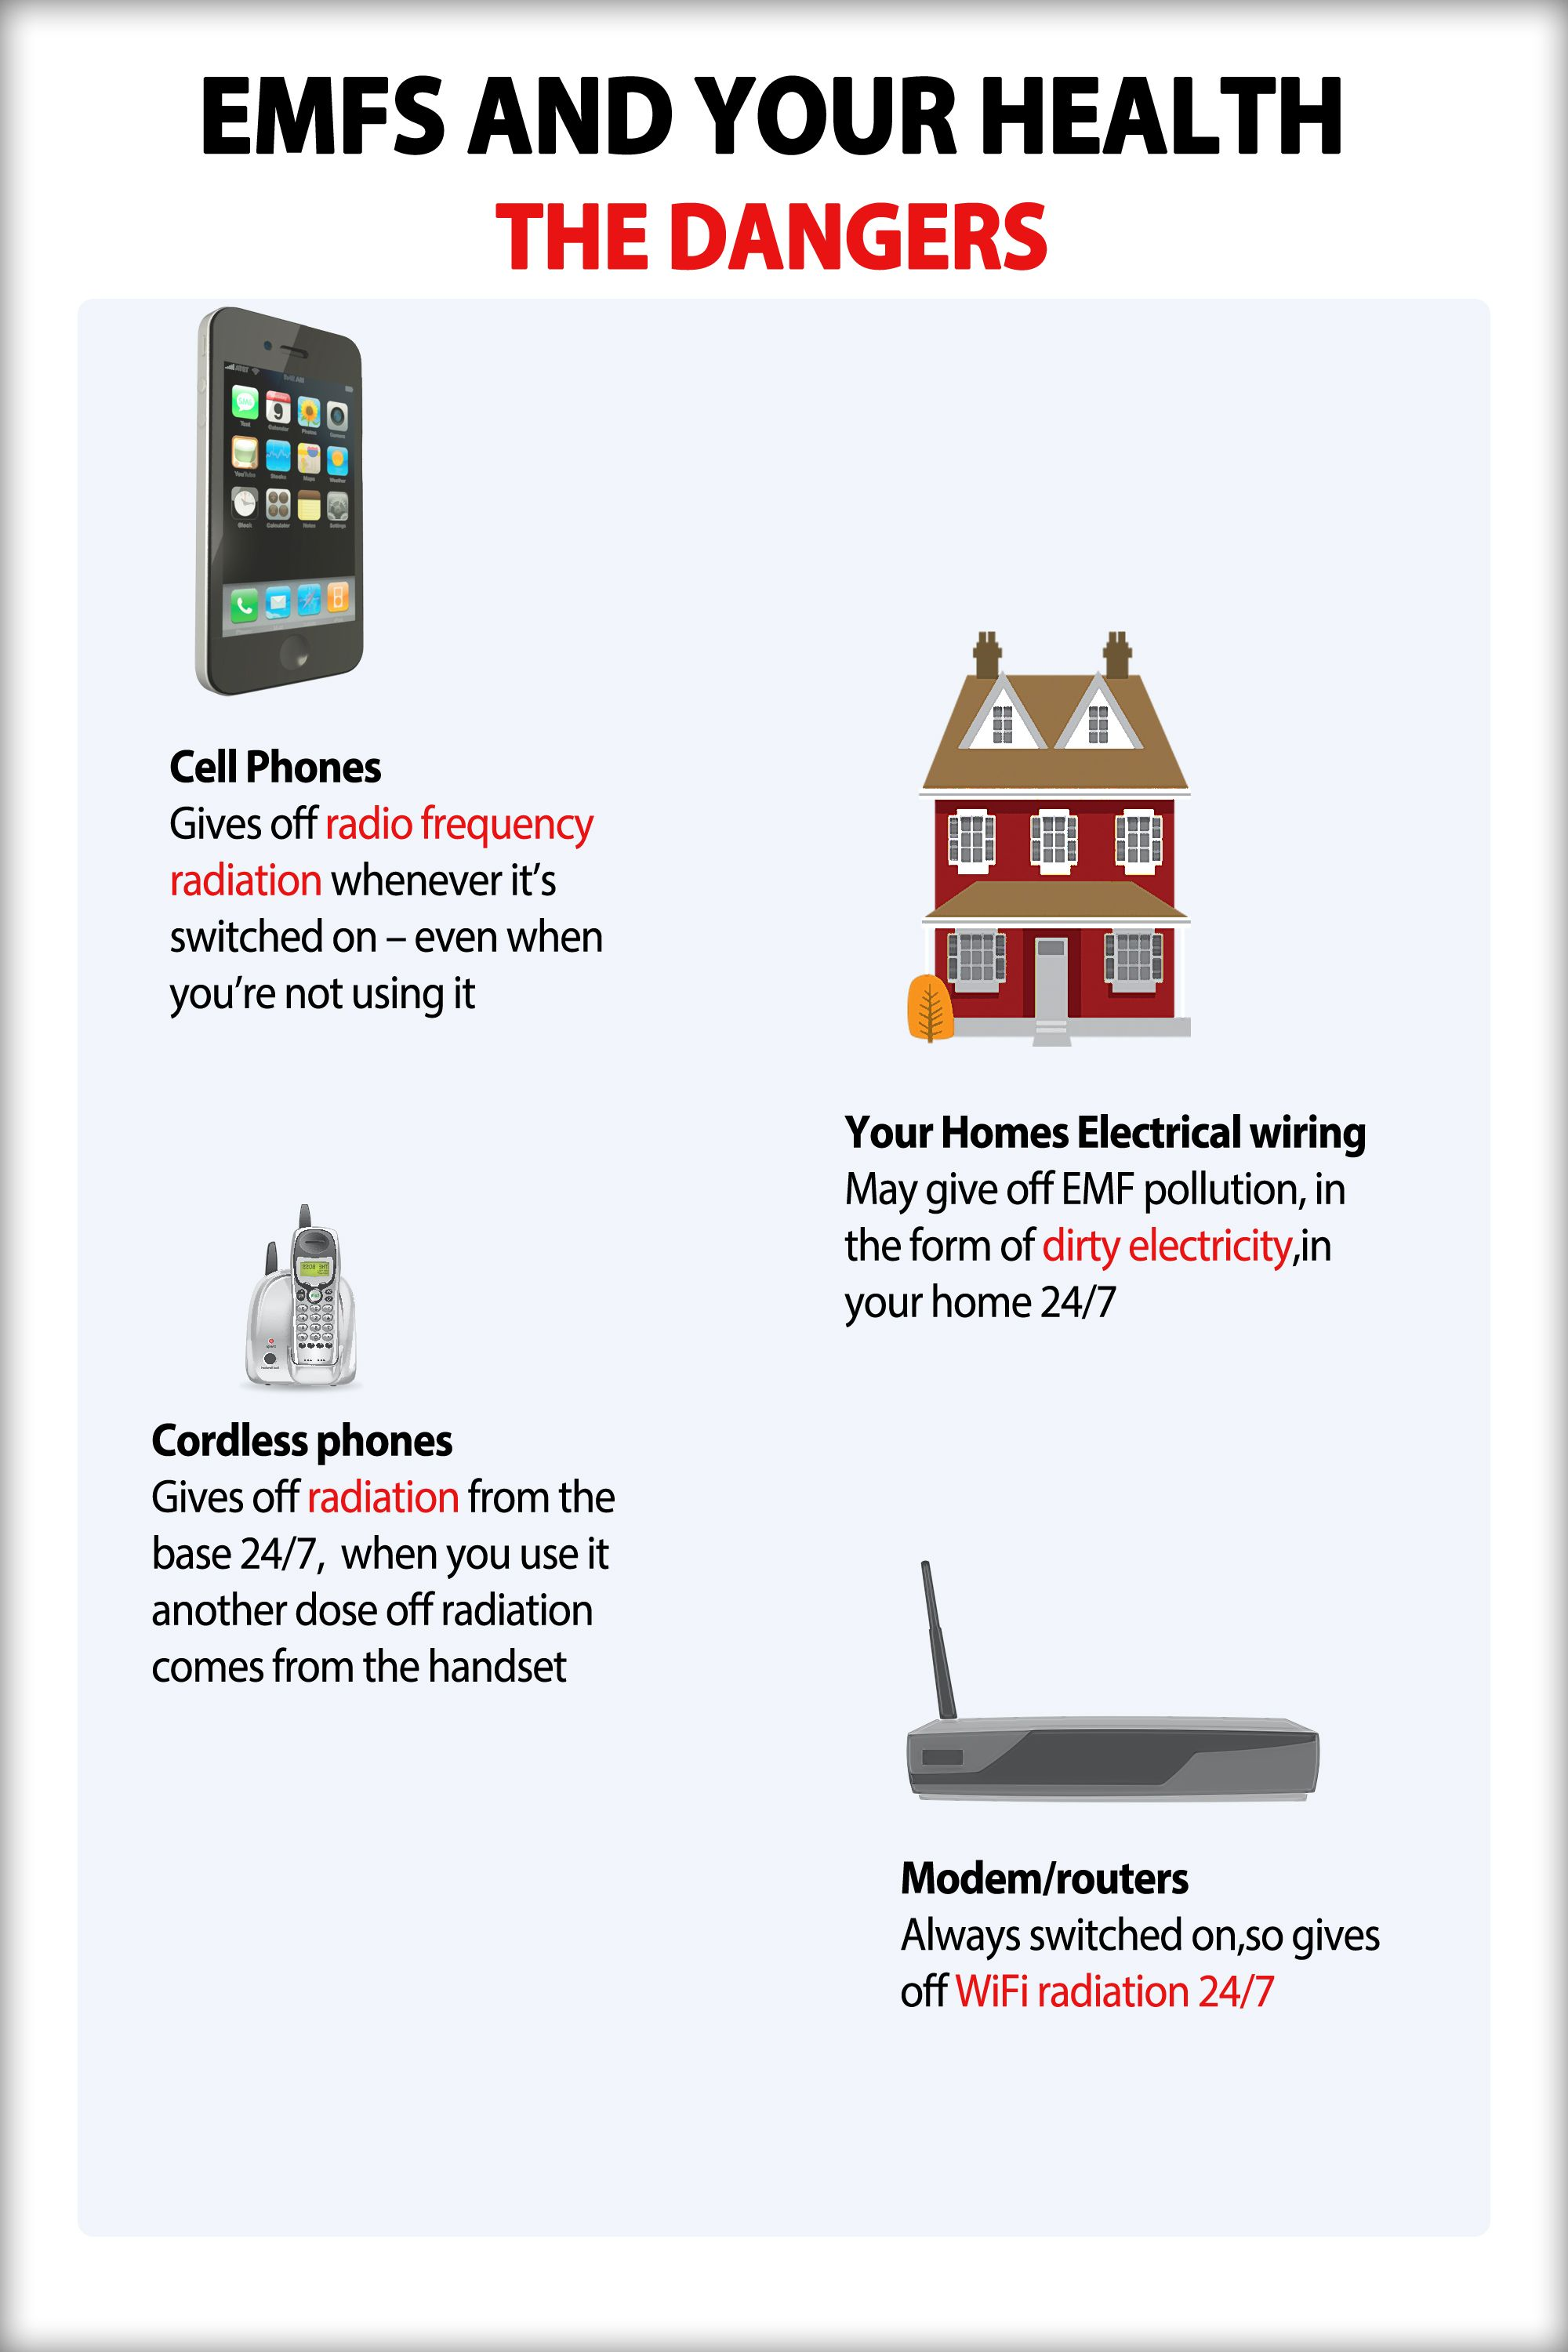 Pin By Reese Mc On Emf Pinterest Electromagnetic Radiation And Electrical Wiring Home Phone Housekeeping Saving Money Wifi